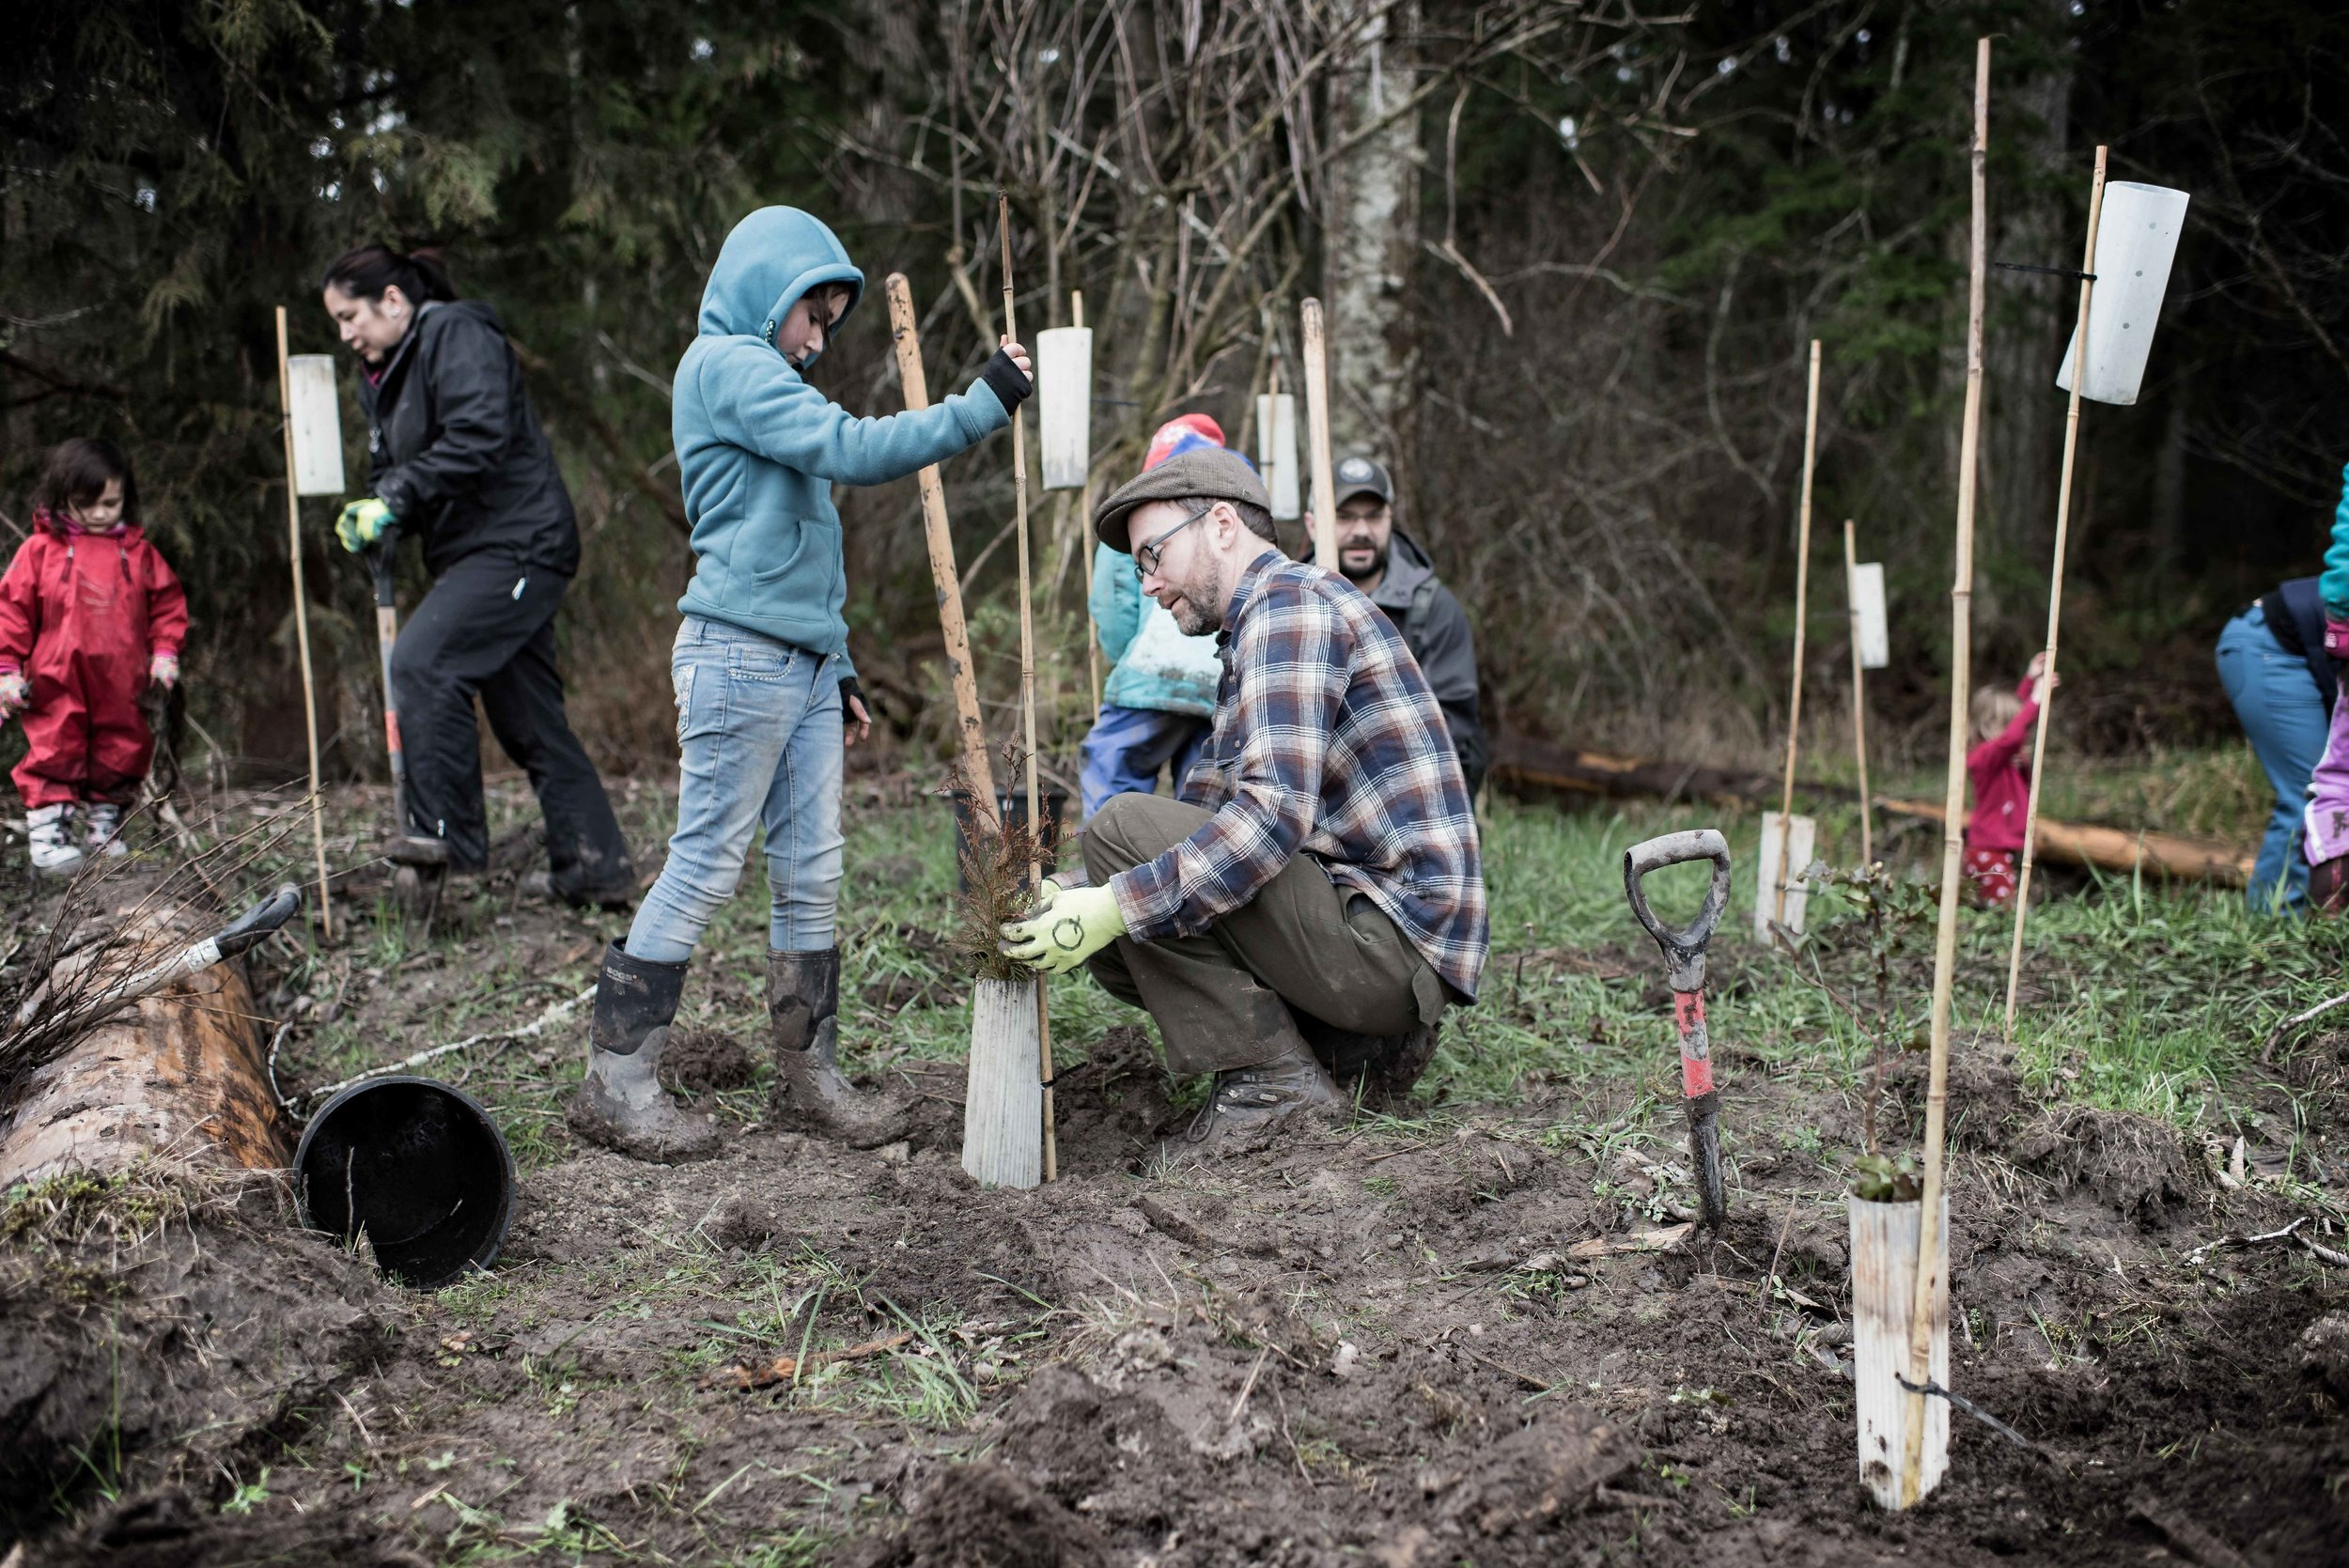 Justin Lake a teacher from Quilcene school plants trees with his daughter Photo_Credit_Eric Rabena.jpg